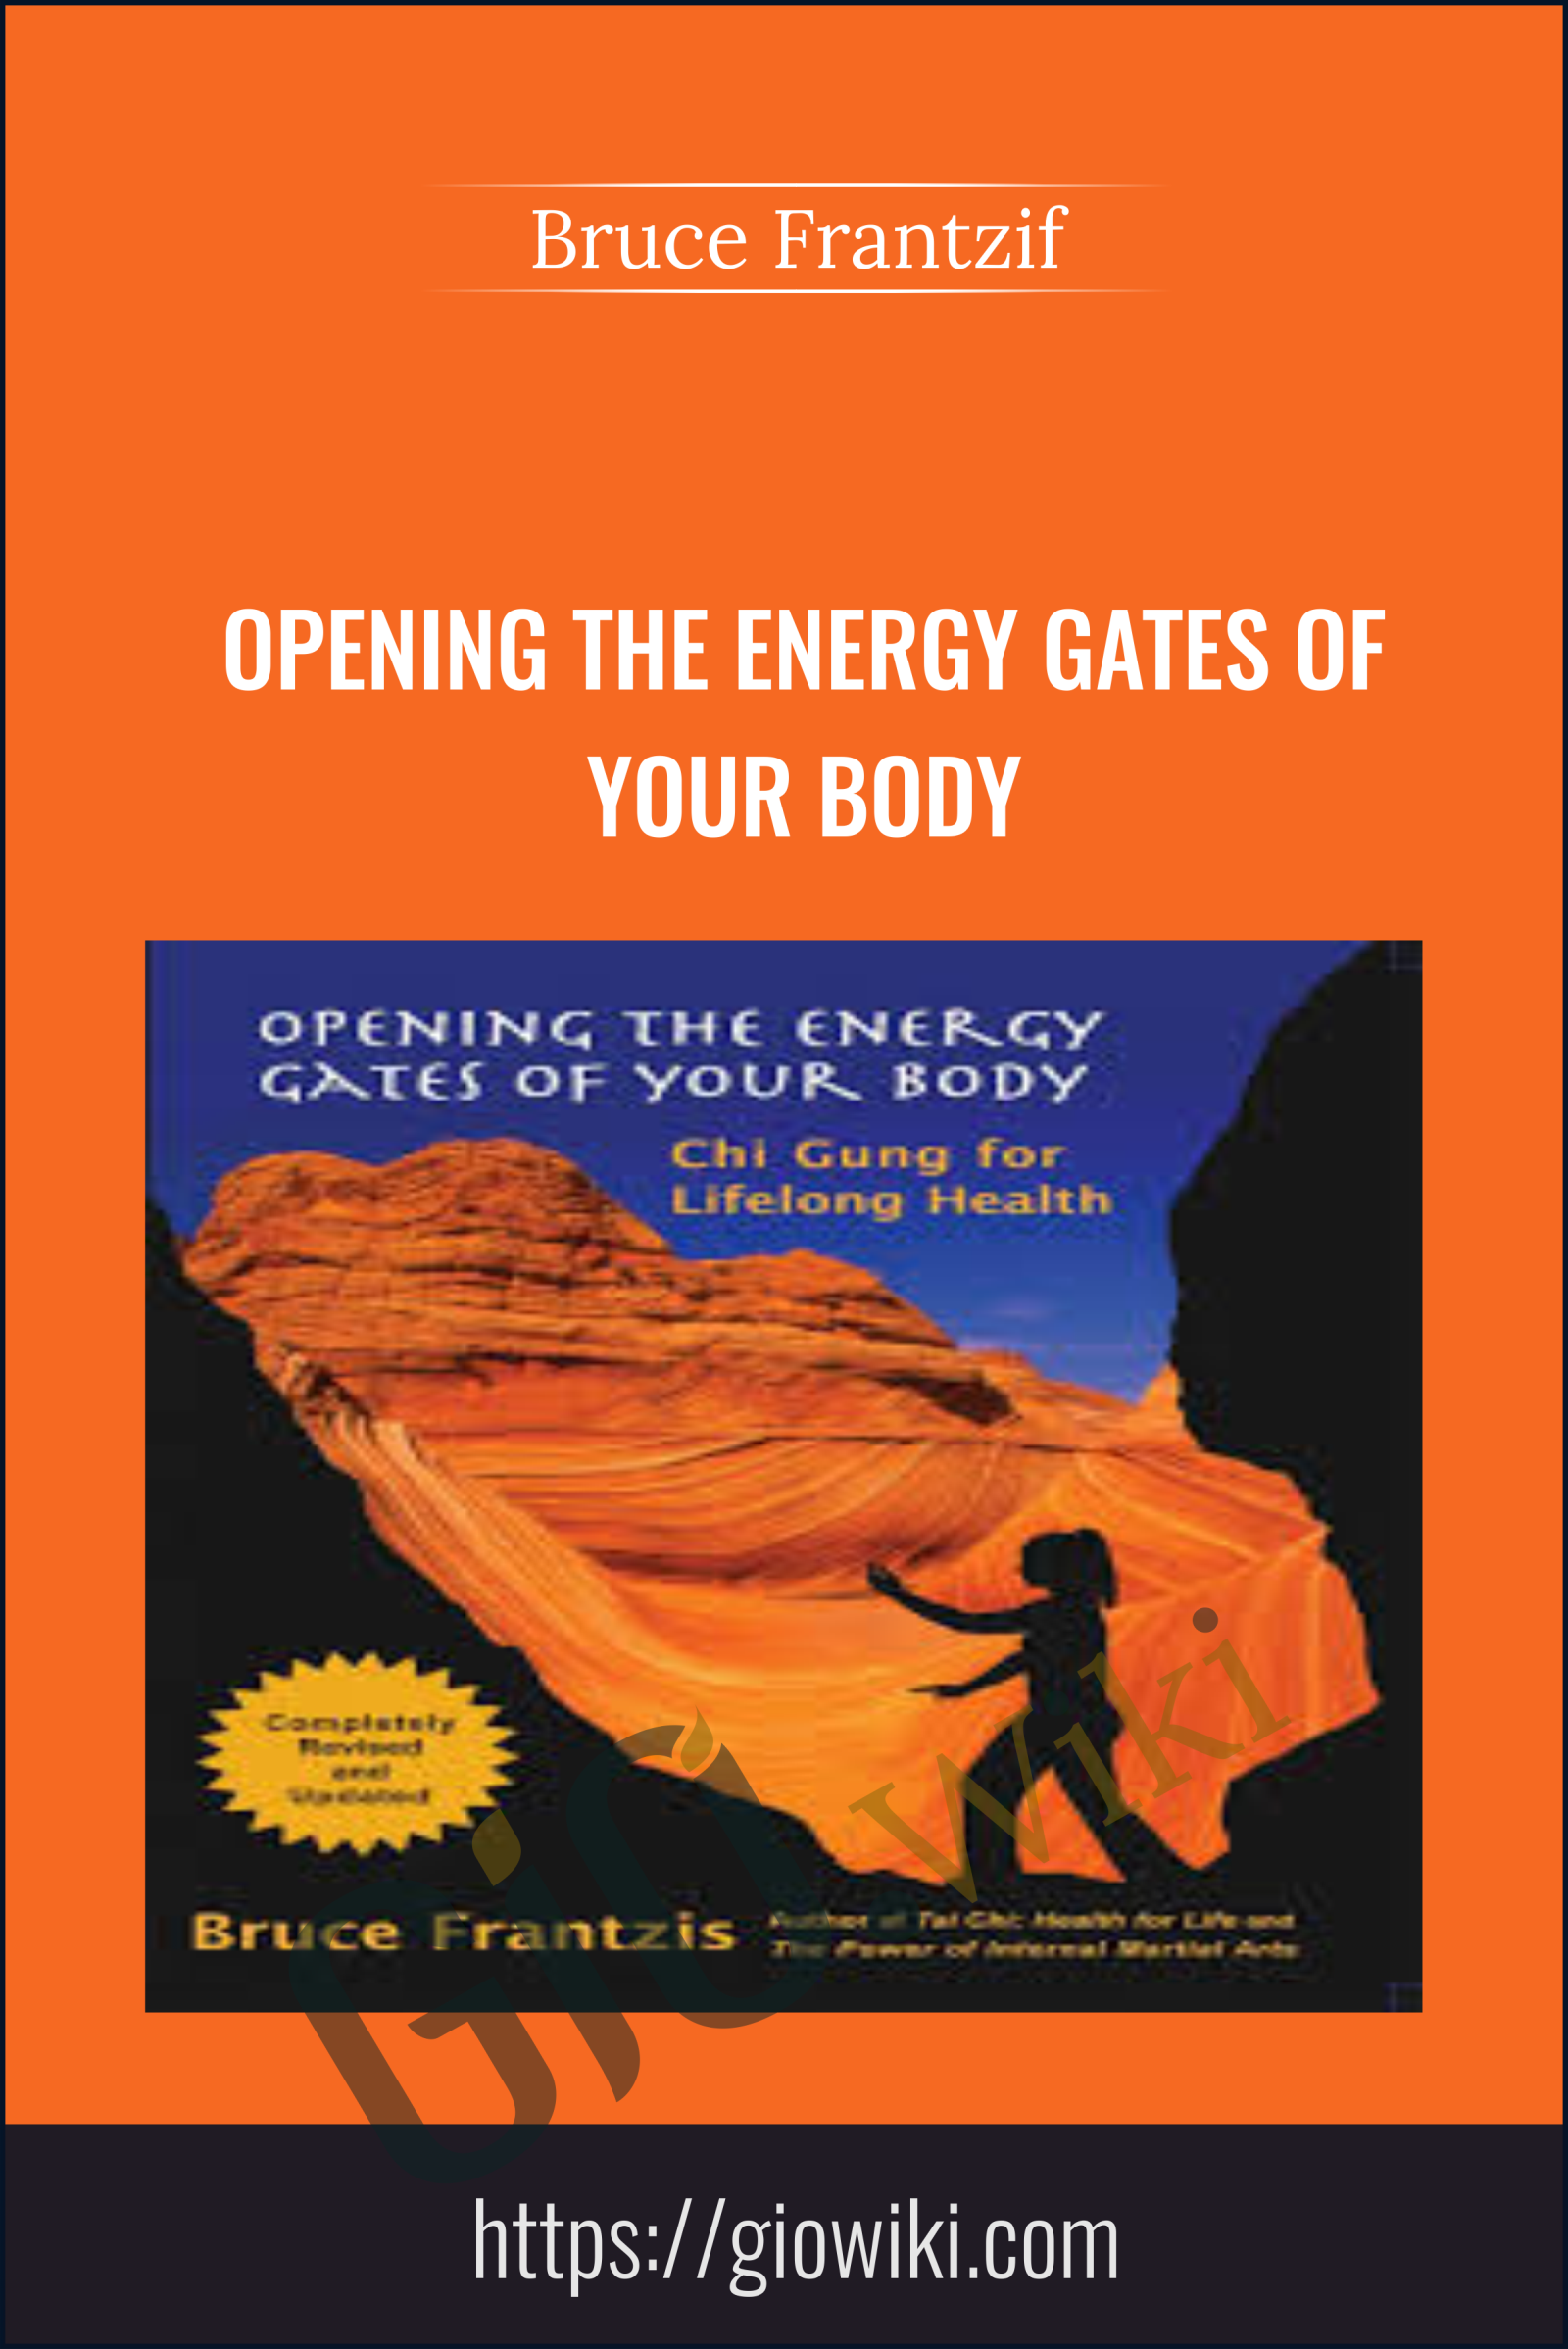 Opening The Energy Gates Of Your Body - Bruce Frantzif